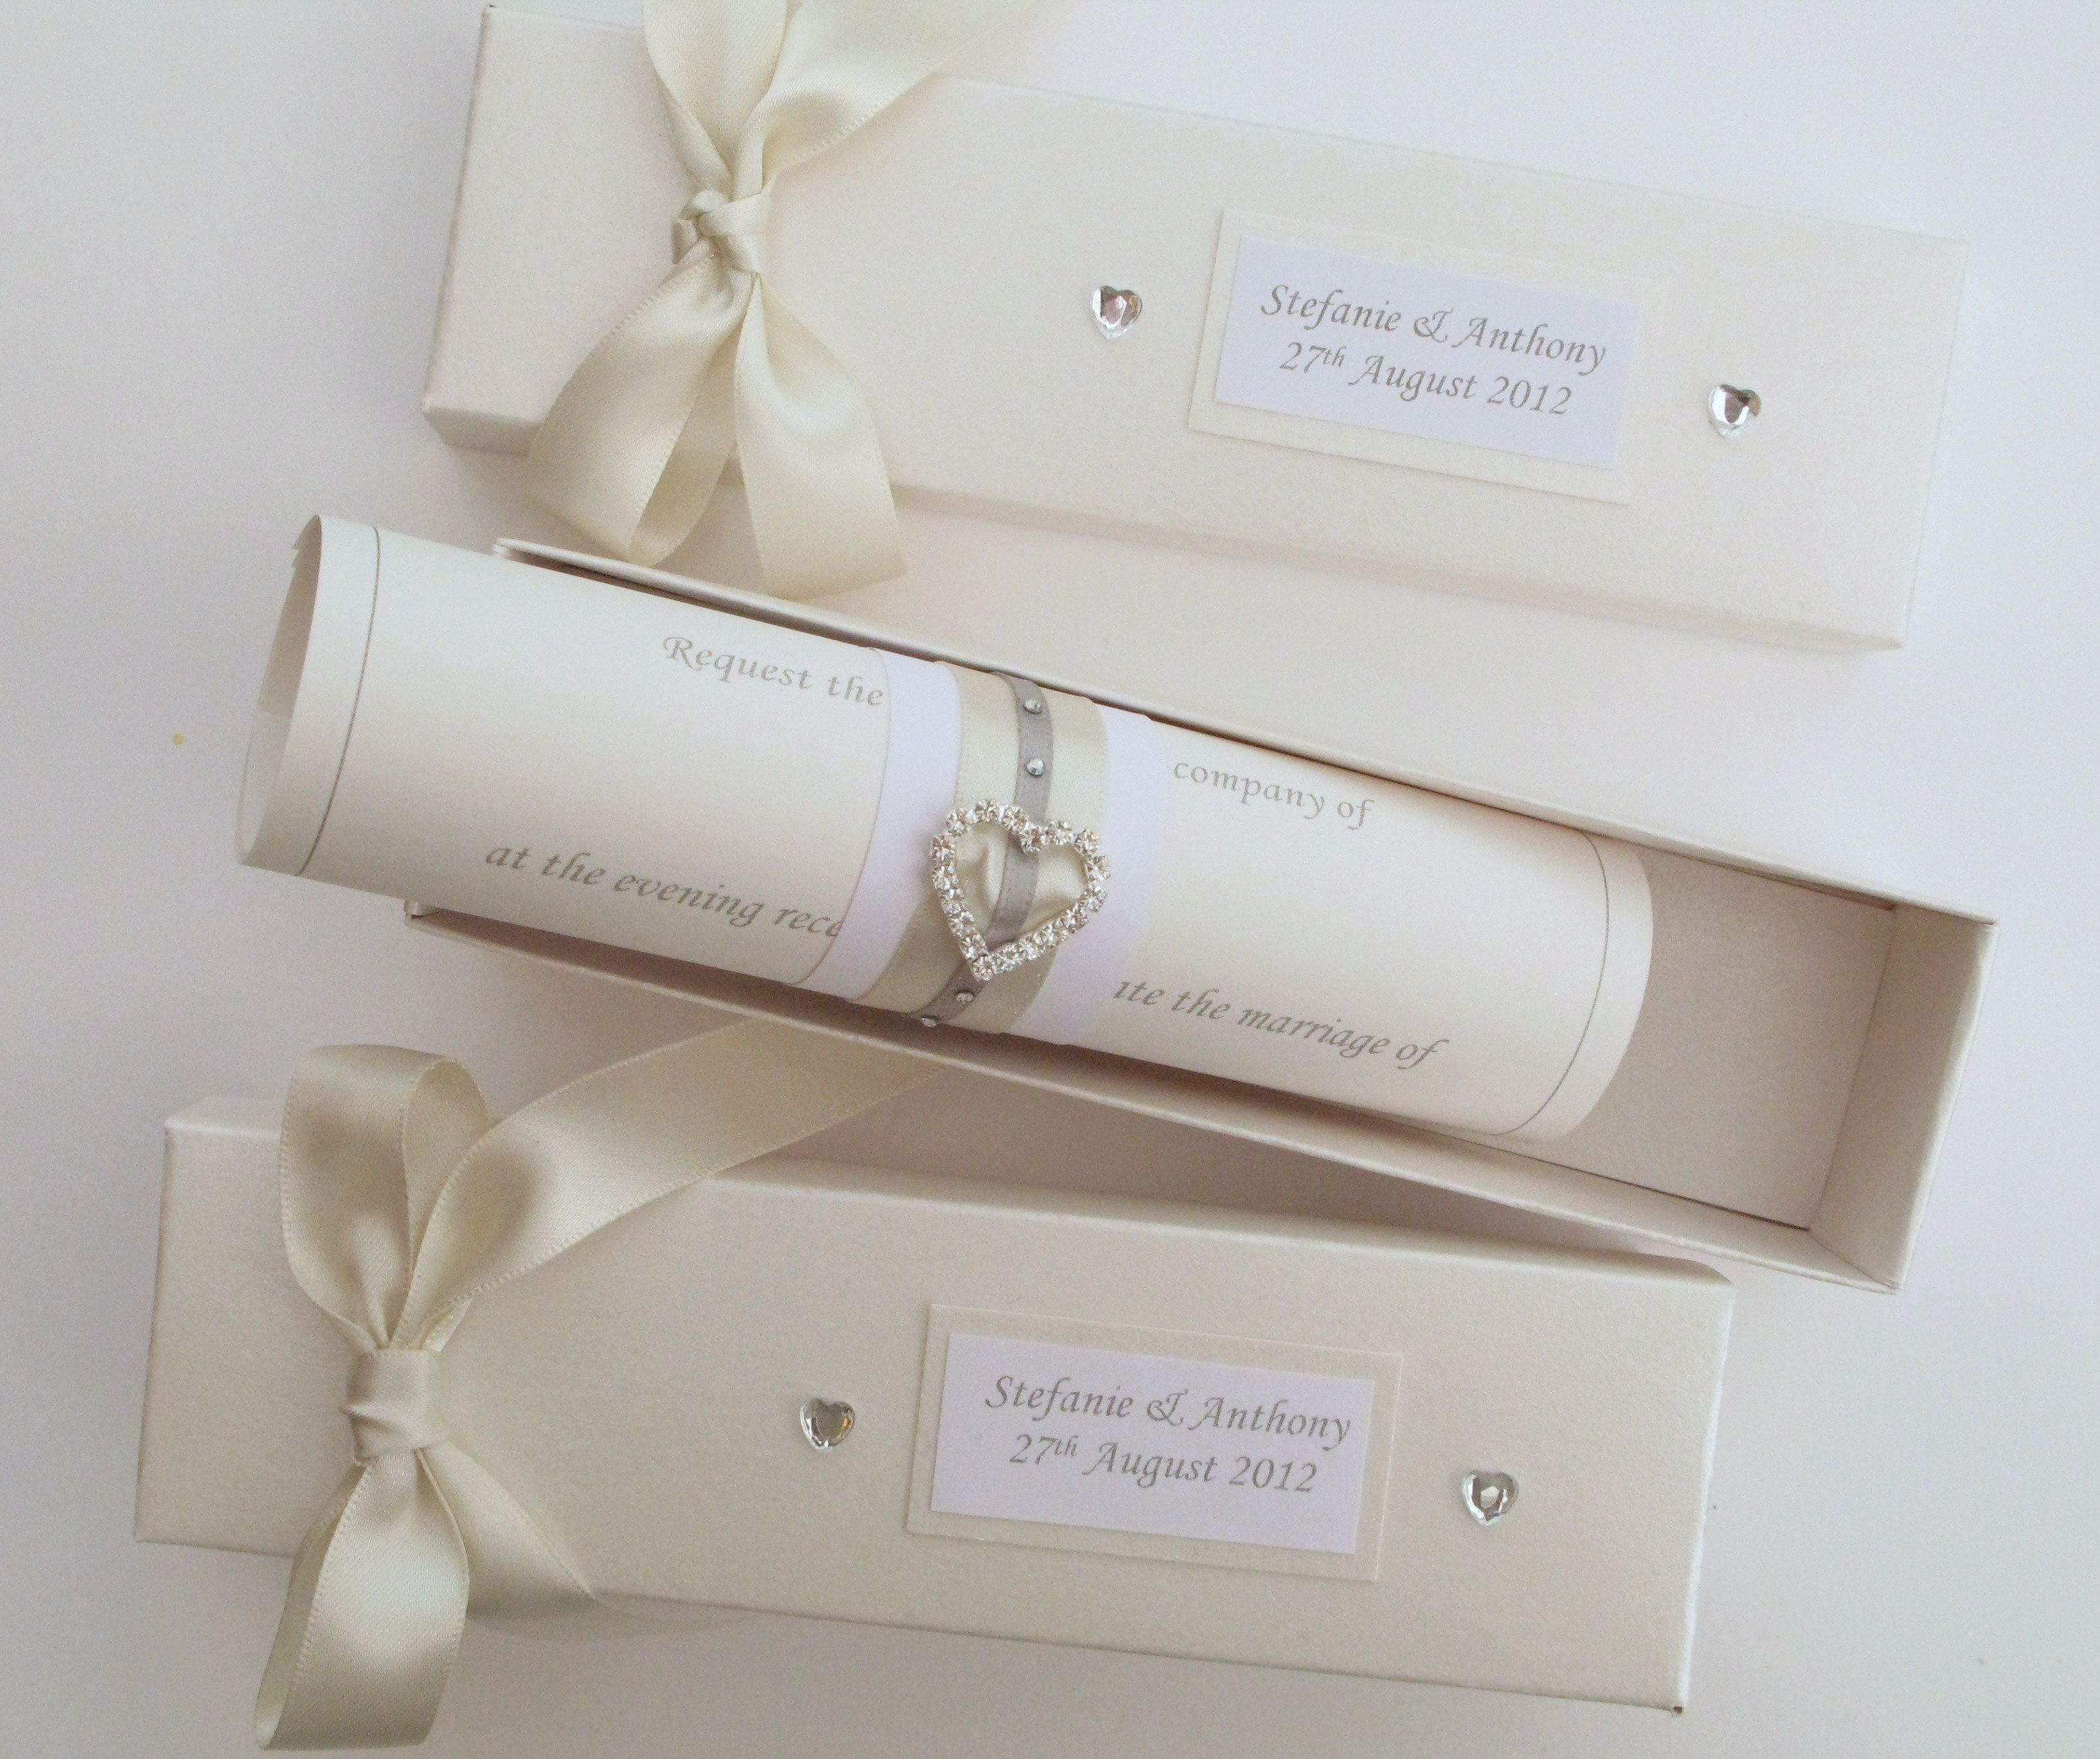 3 wedding invitation tips to follow - Weddings Invitations